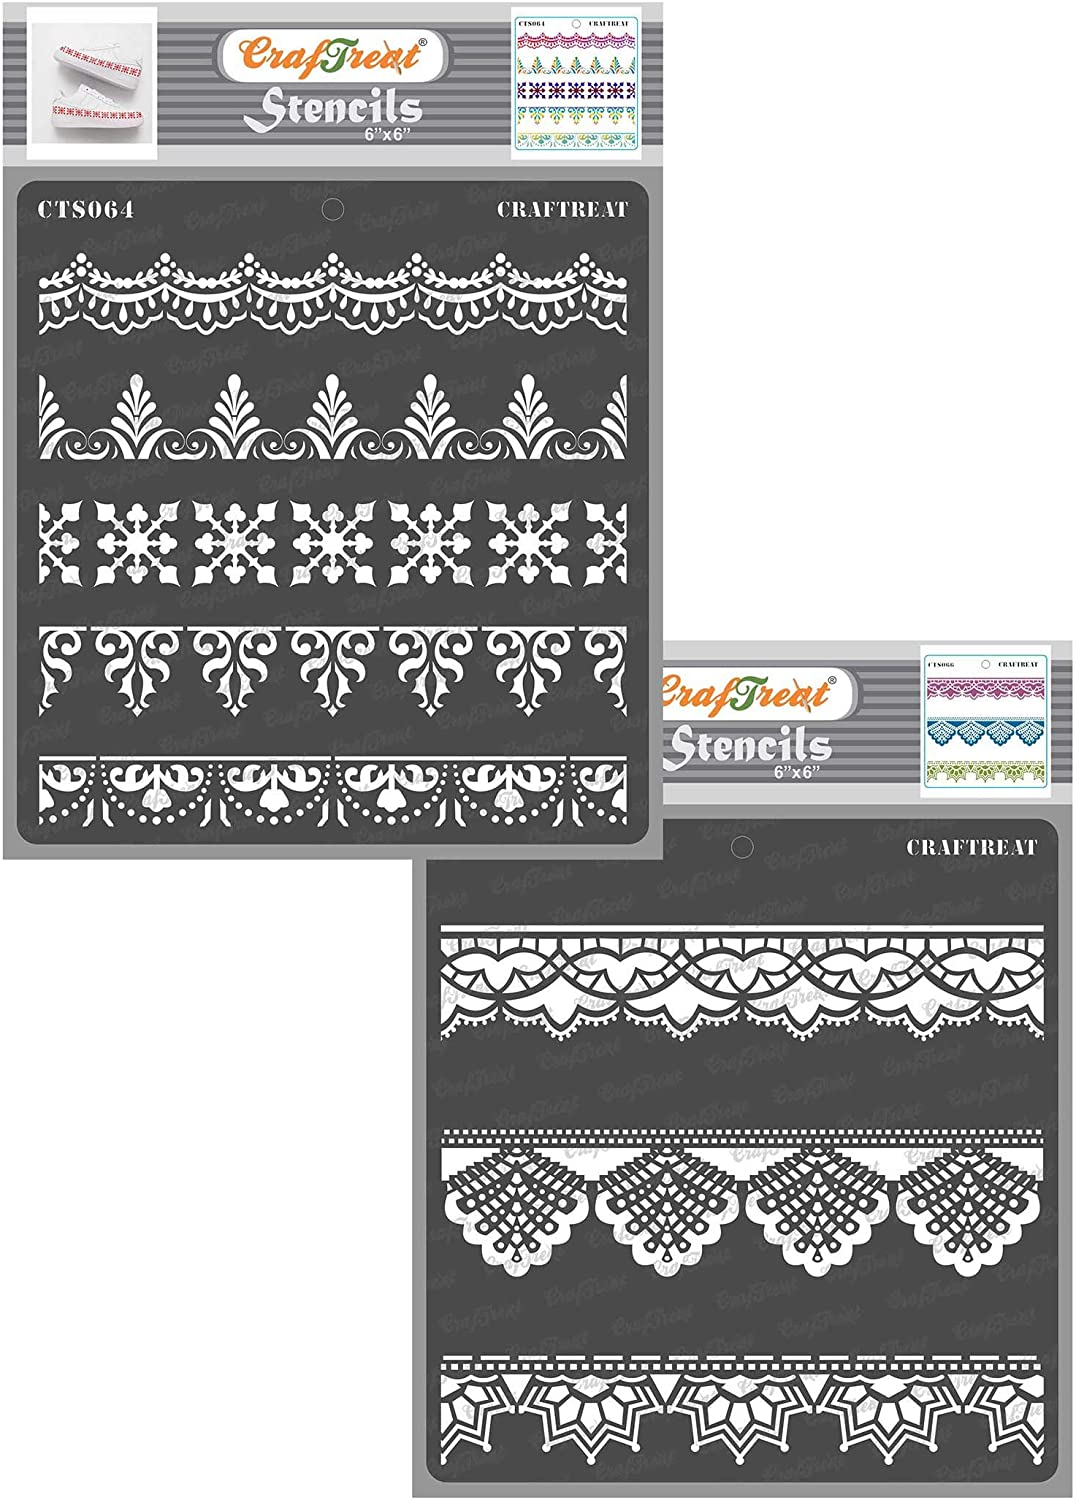 CrafTreat Ornate Border Lace Stencils for painting on Wood, Canvas, Paper, Fabric, Floor, Wall and Tile - Ornate Borders and Lace - 2 Pcs - 6x6 Inches each - Reusable DIY Art and Craft Stencils